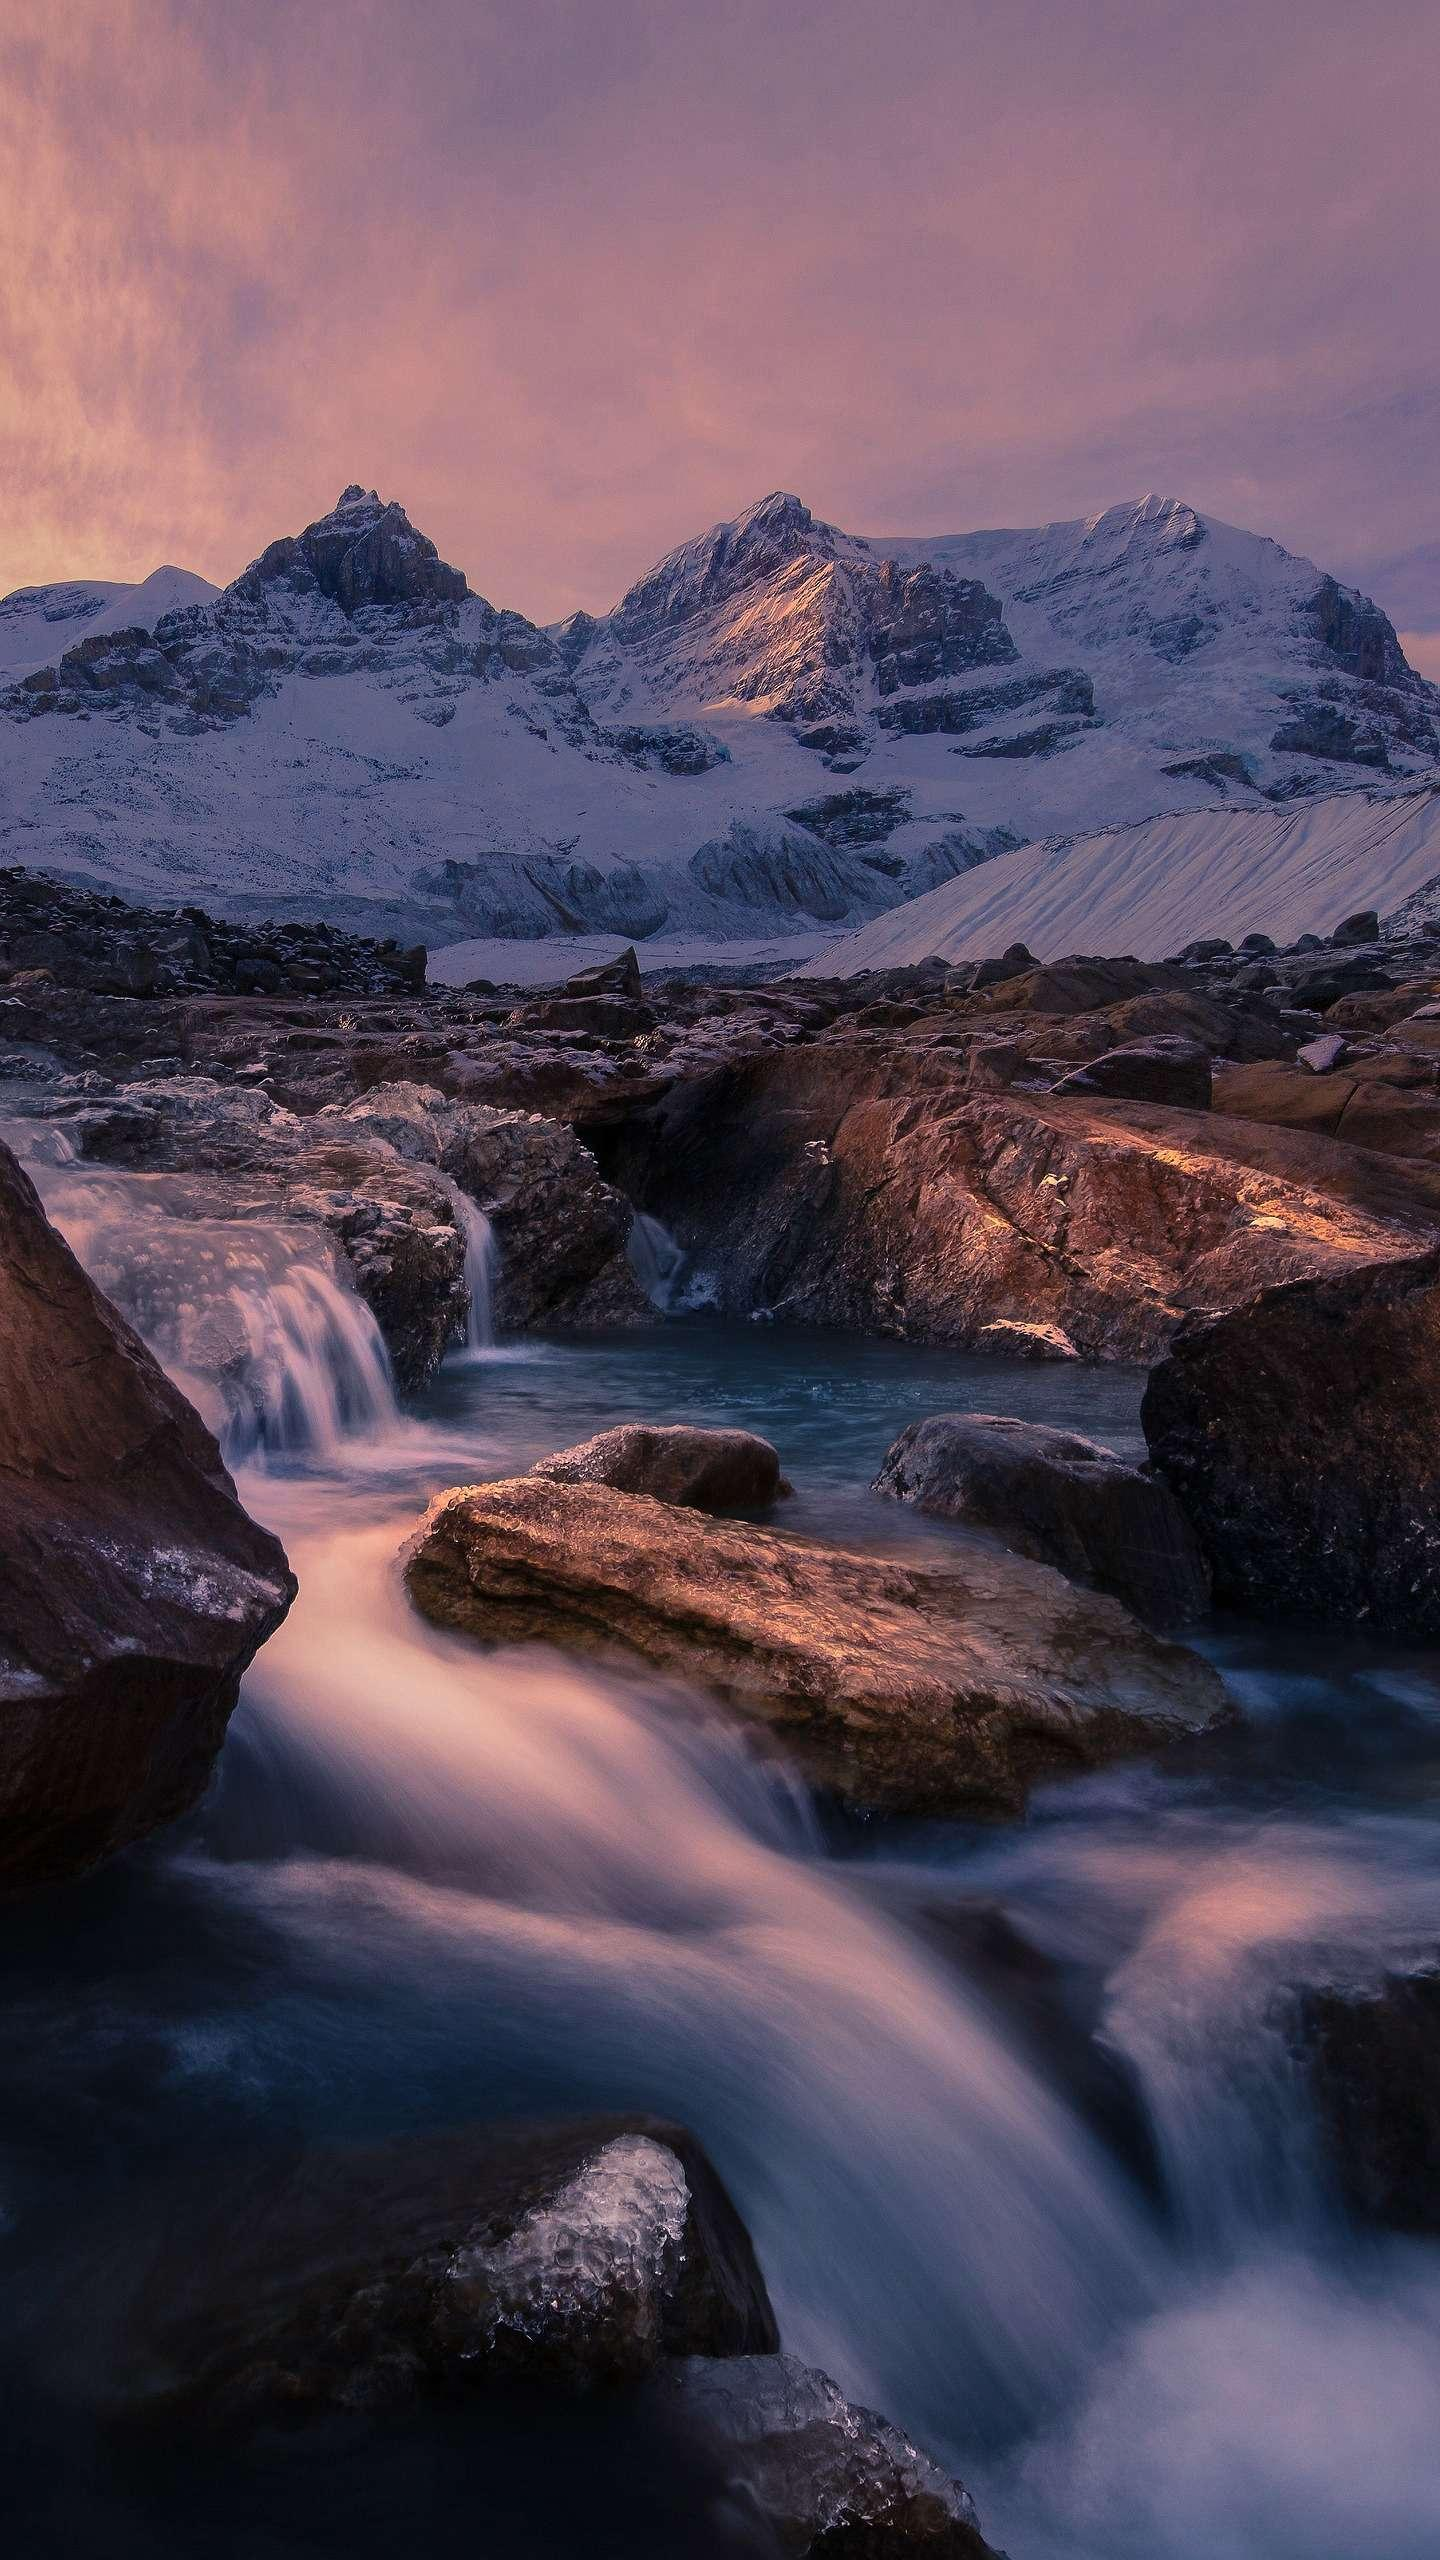 Columbia Icefields. The Canadian Columbia Icefield is the largest ice sheet outside the Arctic Circle and is currently receding at a rate of 10 meters per year.